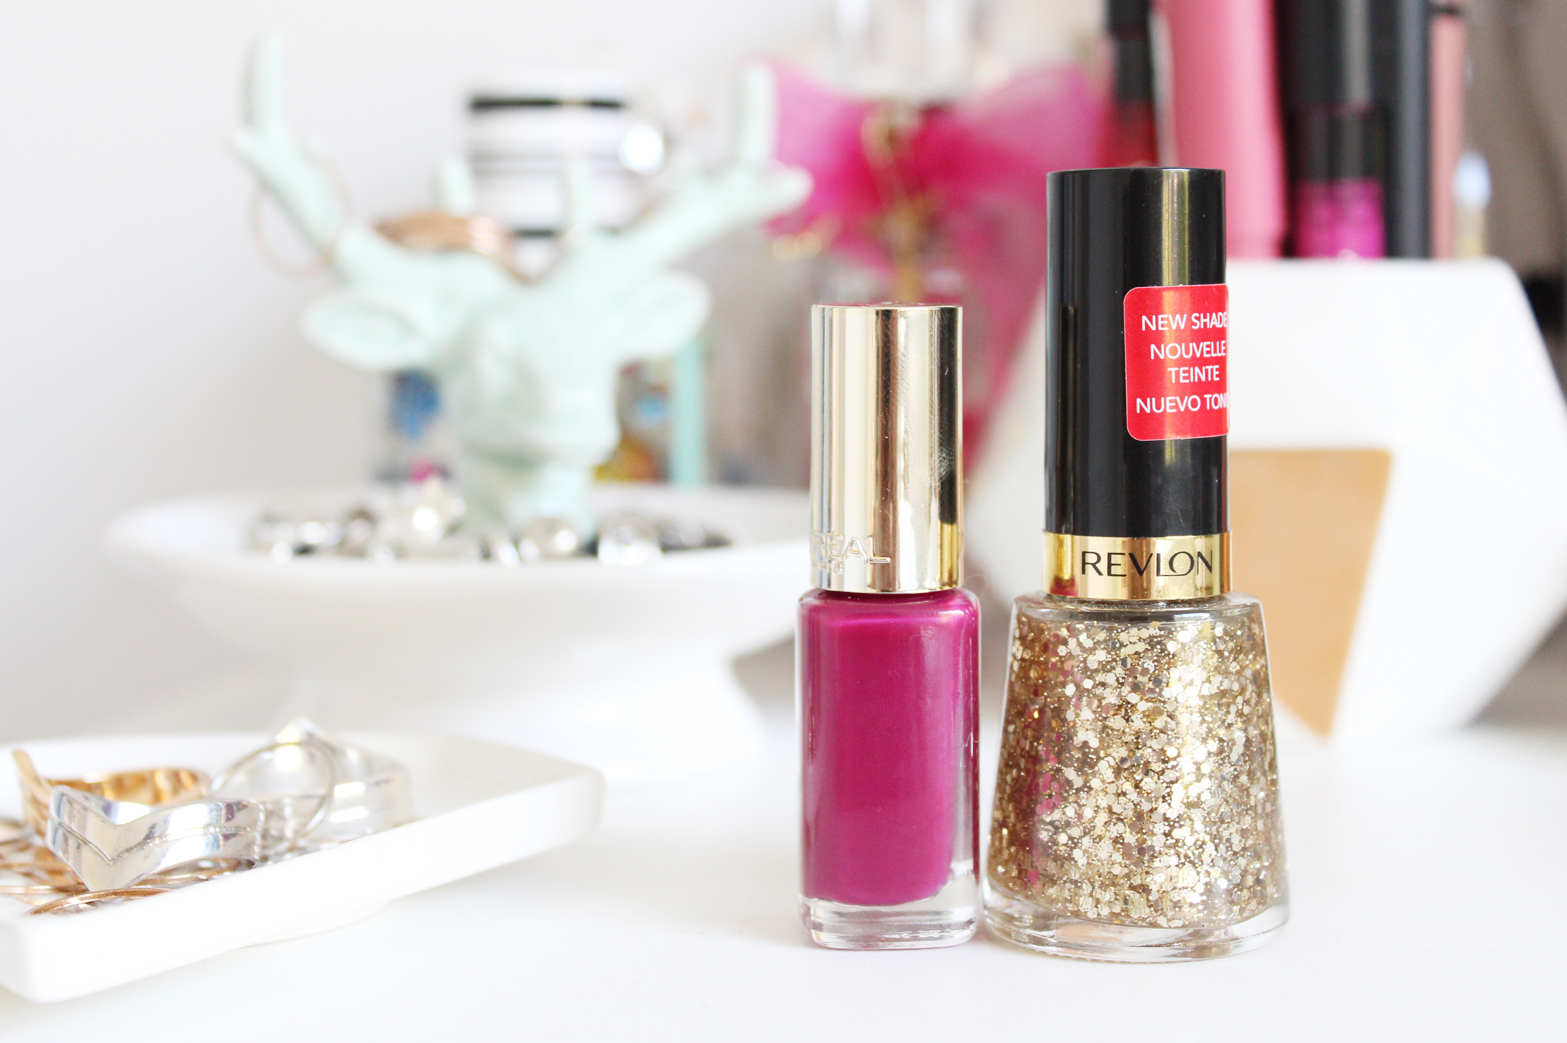 NOTD | L'Oreal Colour Riche Le Vernis in 870 Fourreau Inferno + Revlon Nail Lacquer in Sequins - CassandraMyee